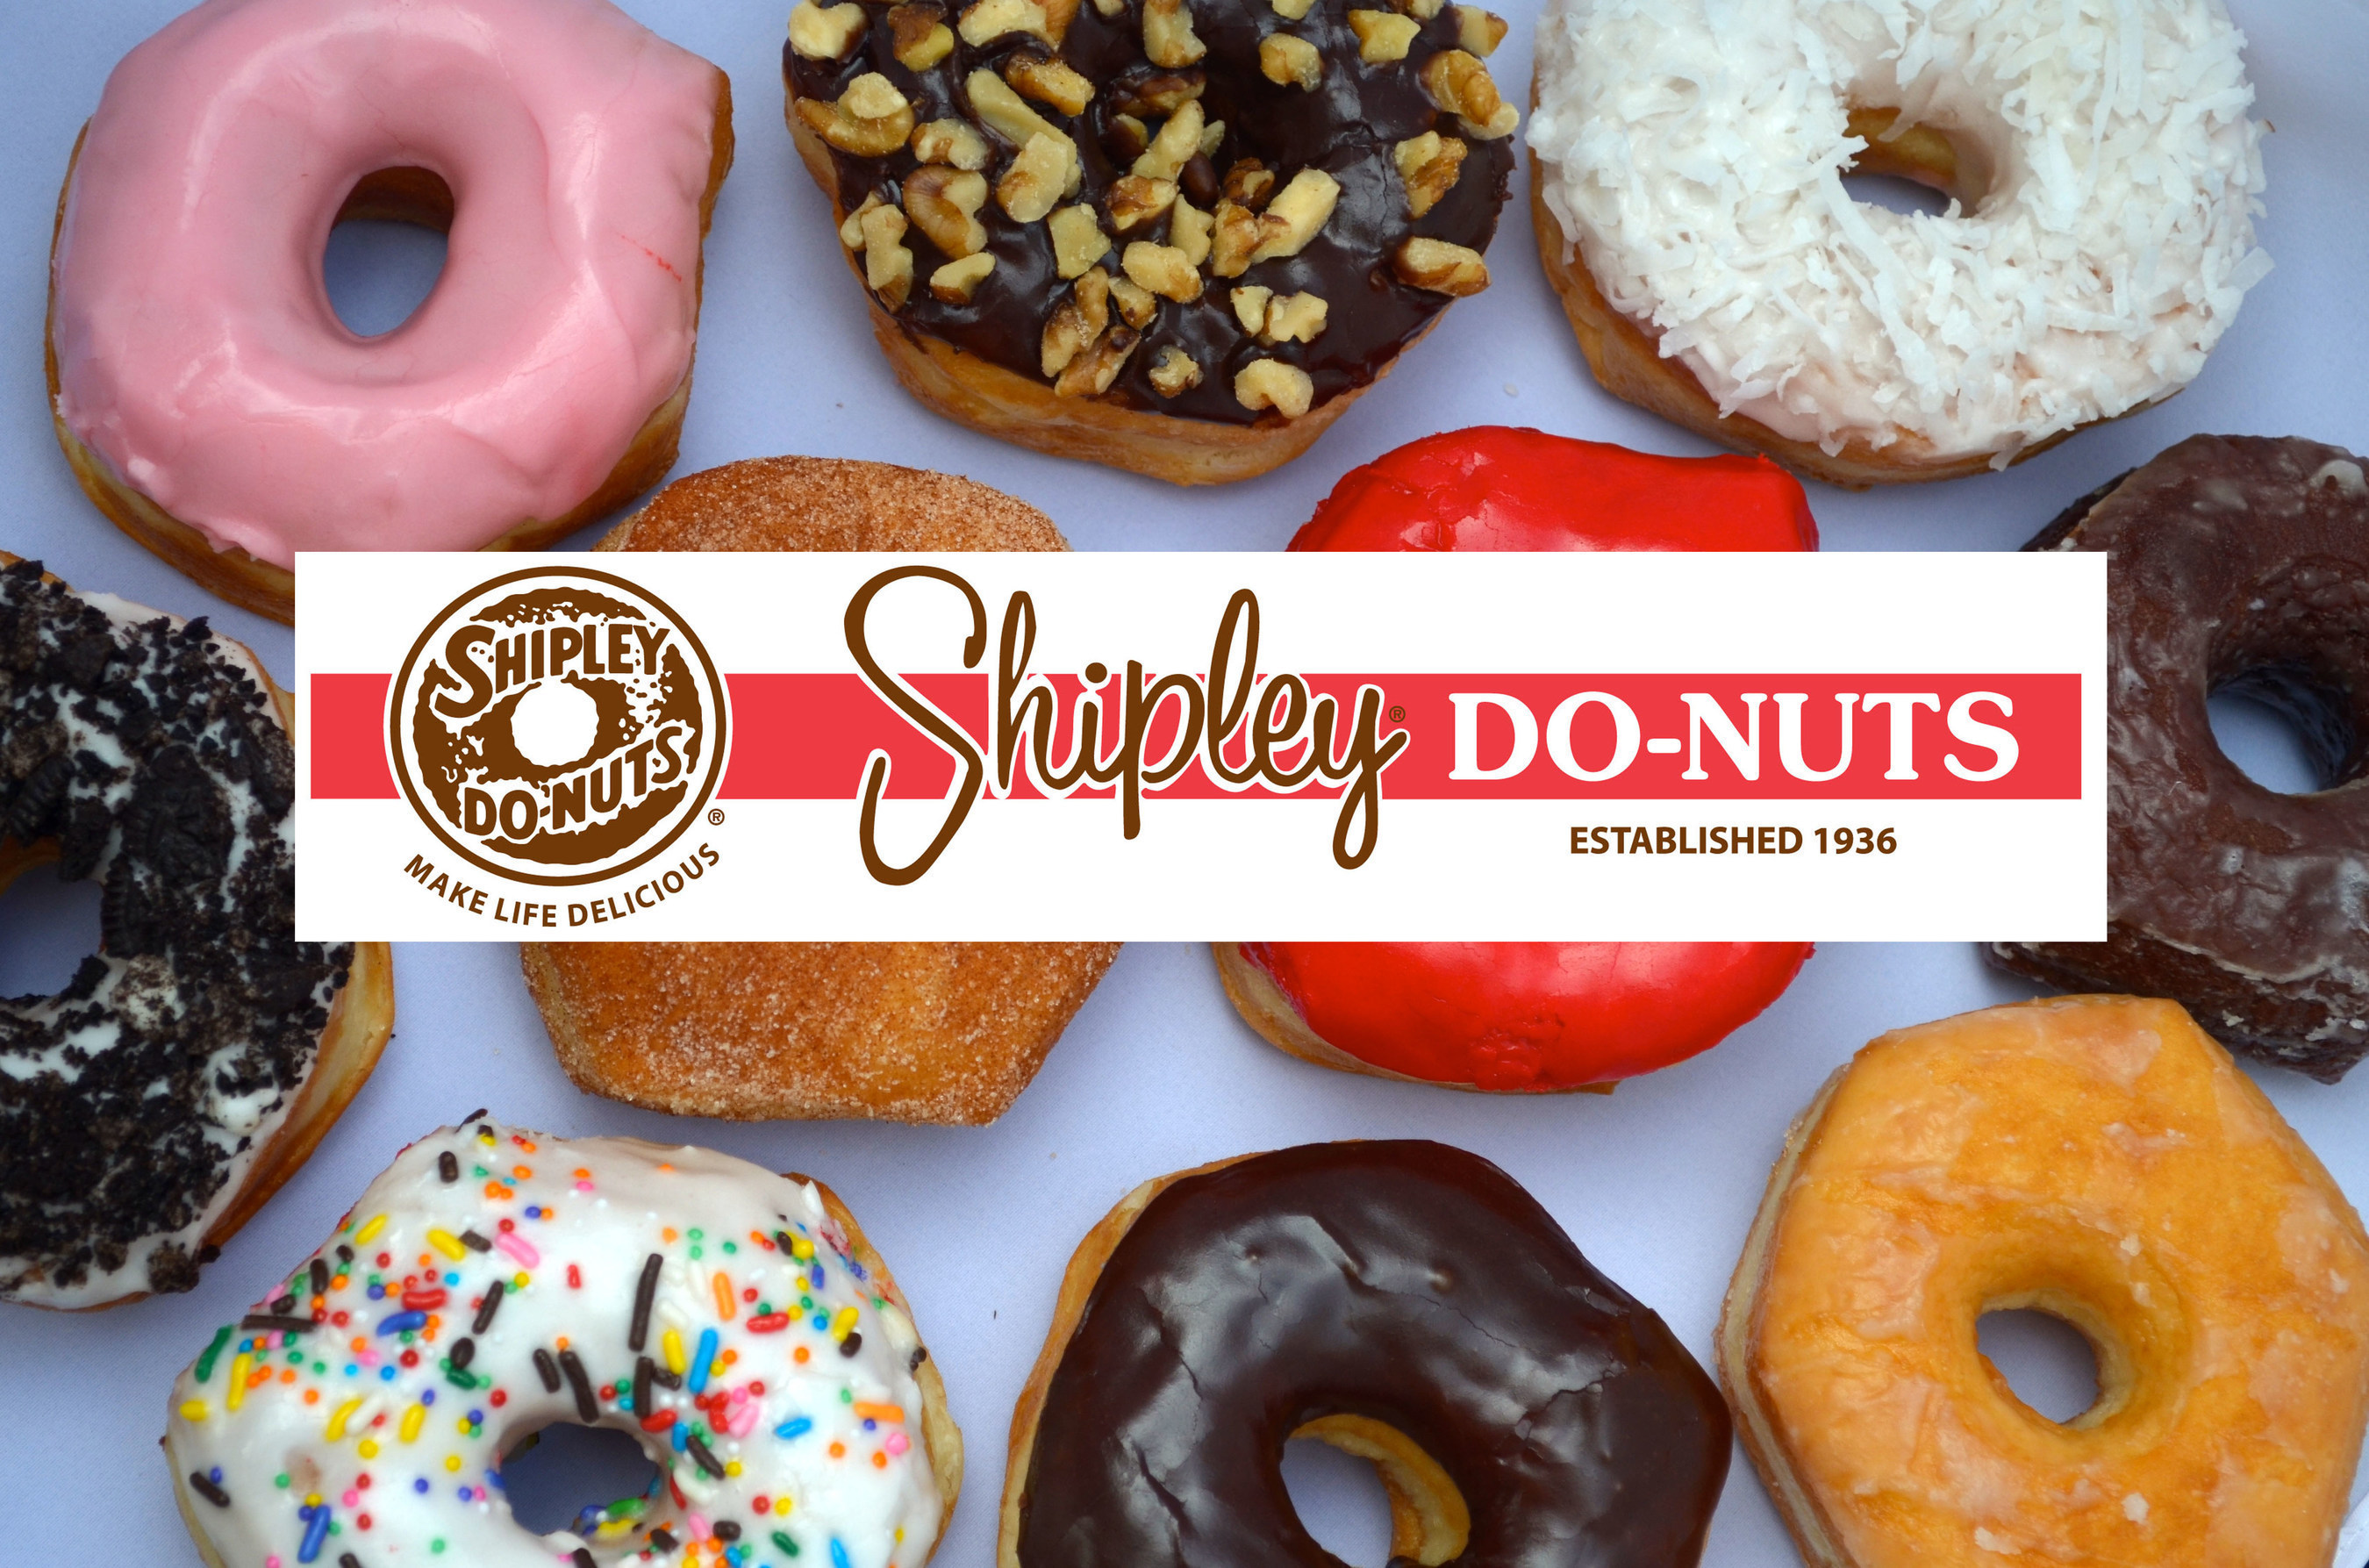 Shipley Do-Nuts -- Making Life Delicious since 1936 with over 250 locations in the US